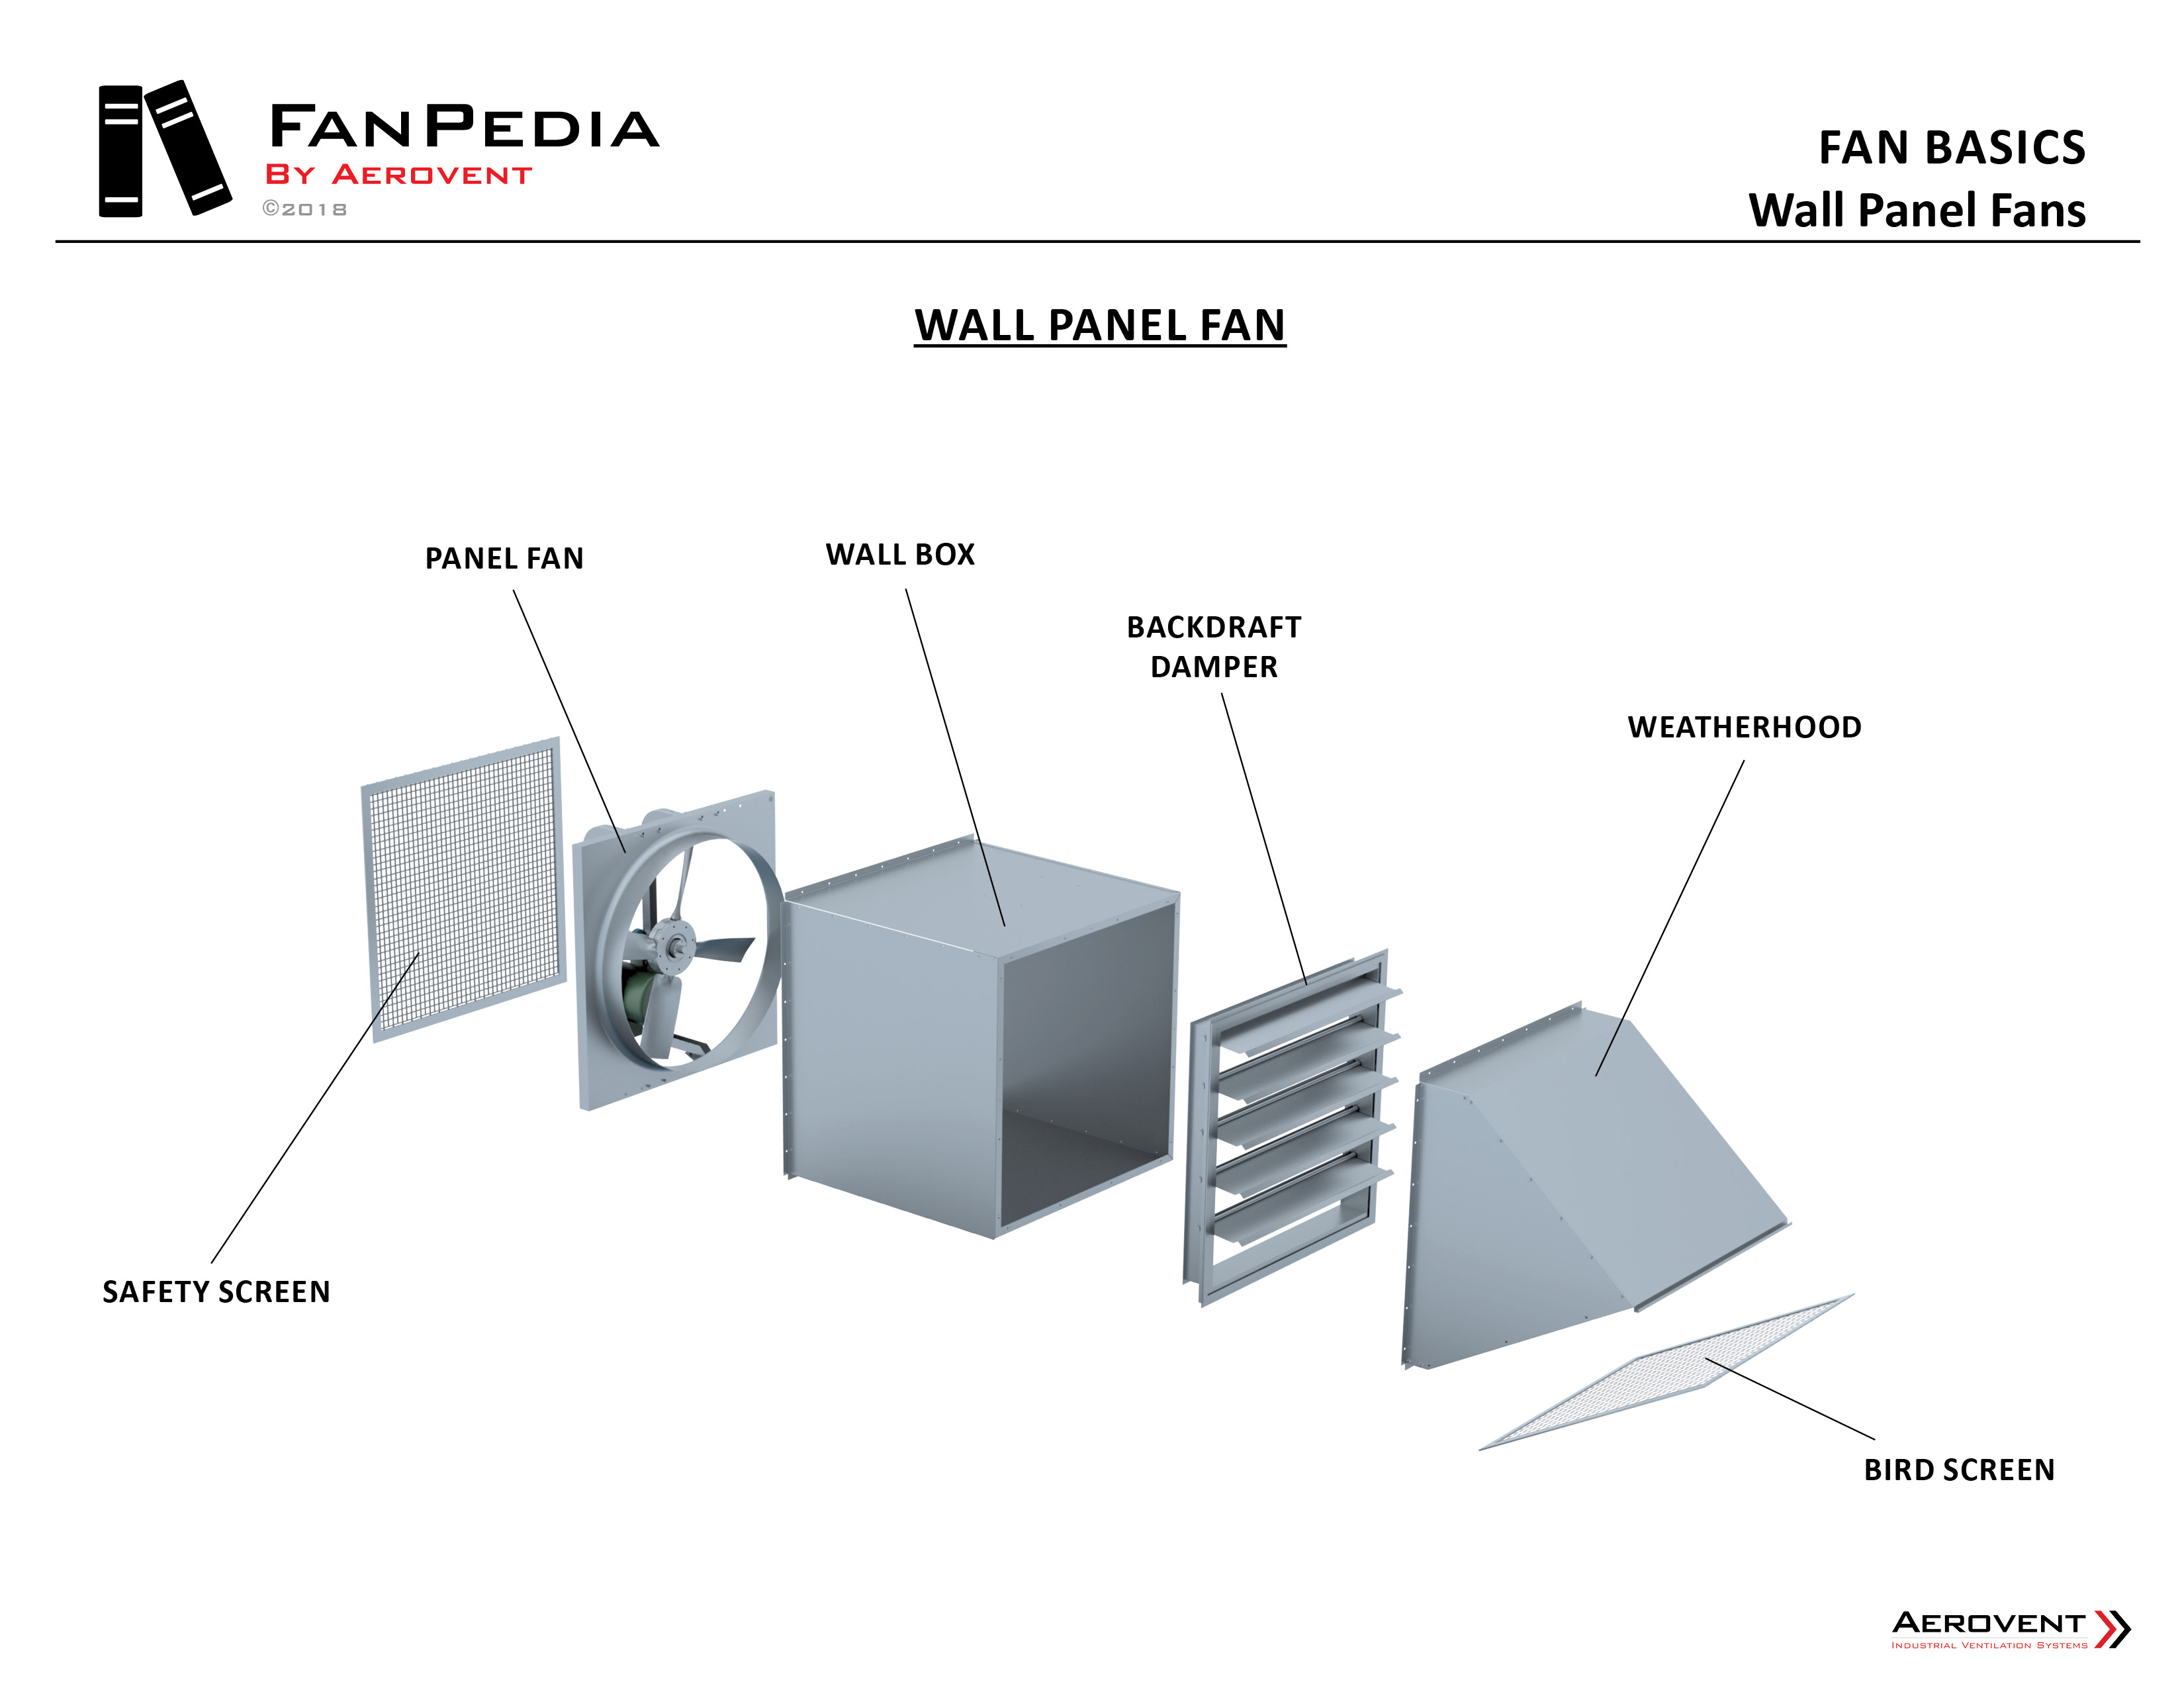 Fan Basics - Exploded Views9